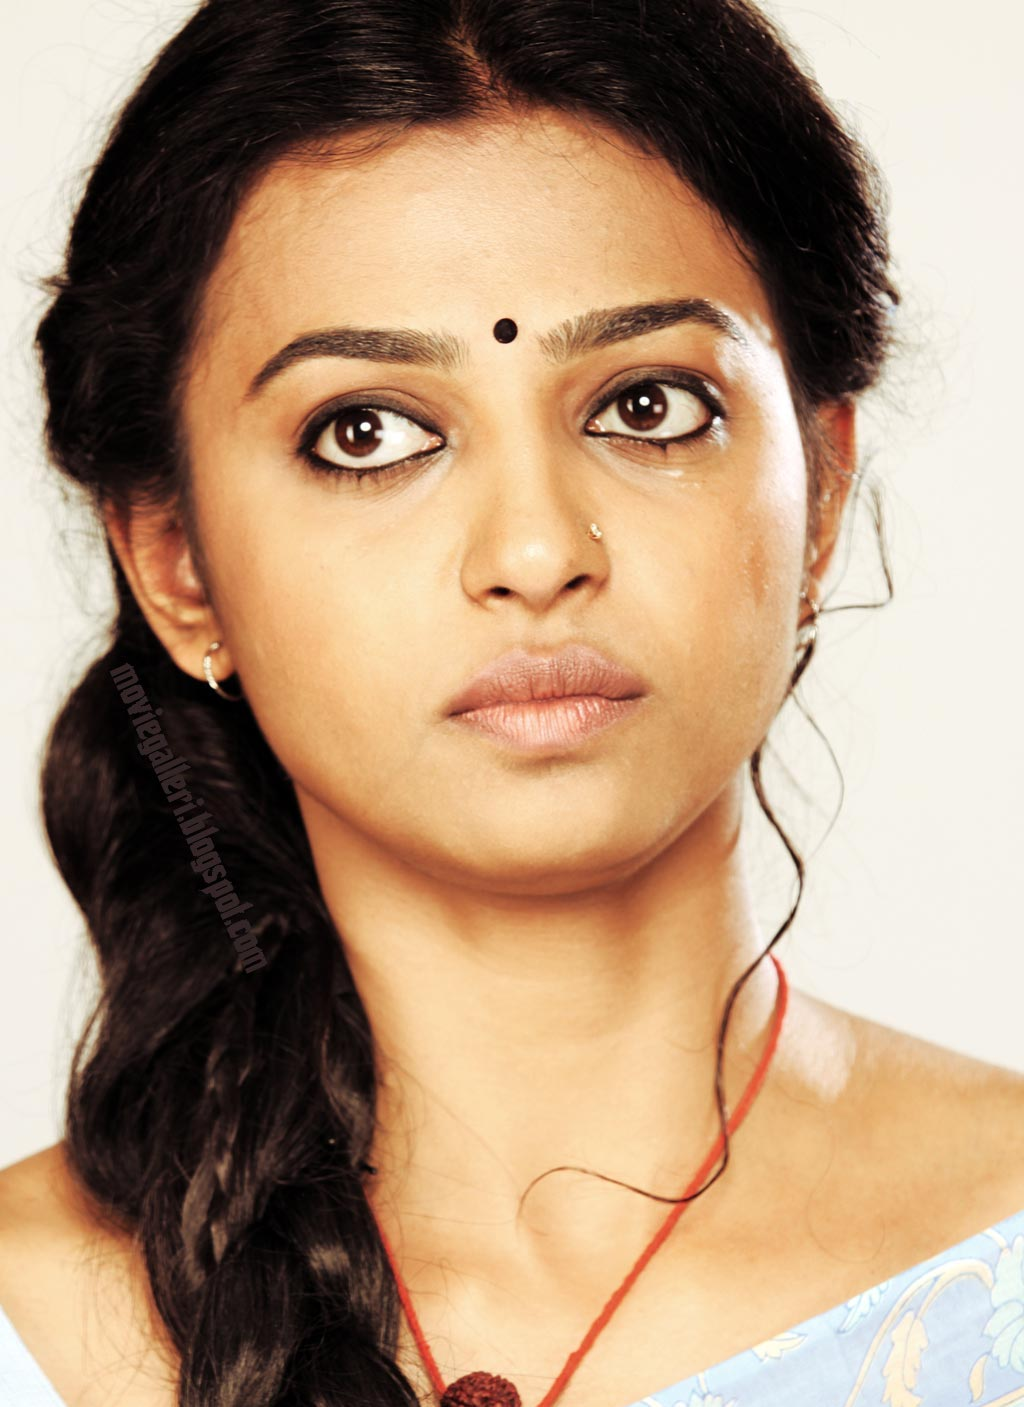 Rakta Charitra Actress Radhika Apte Hq Wallpapers, Stills -4740